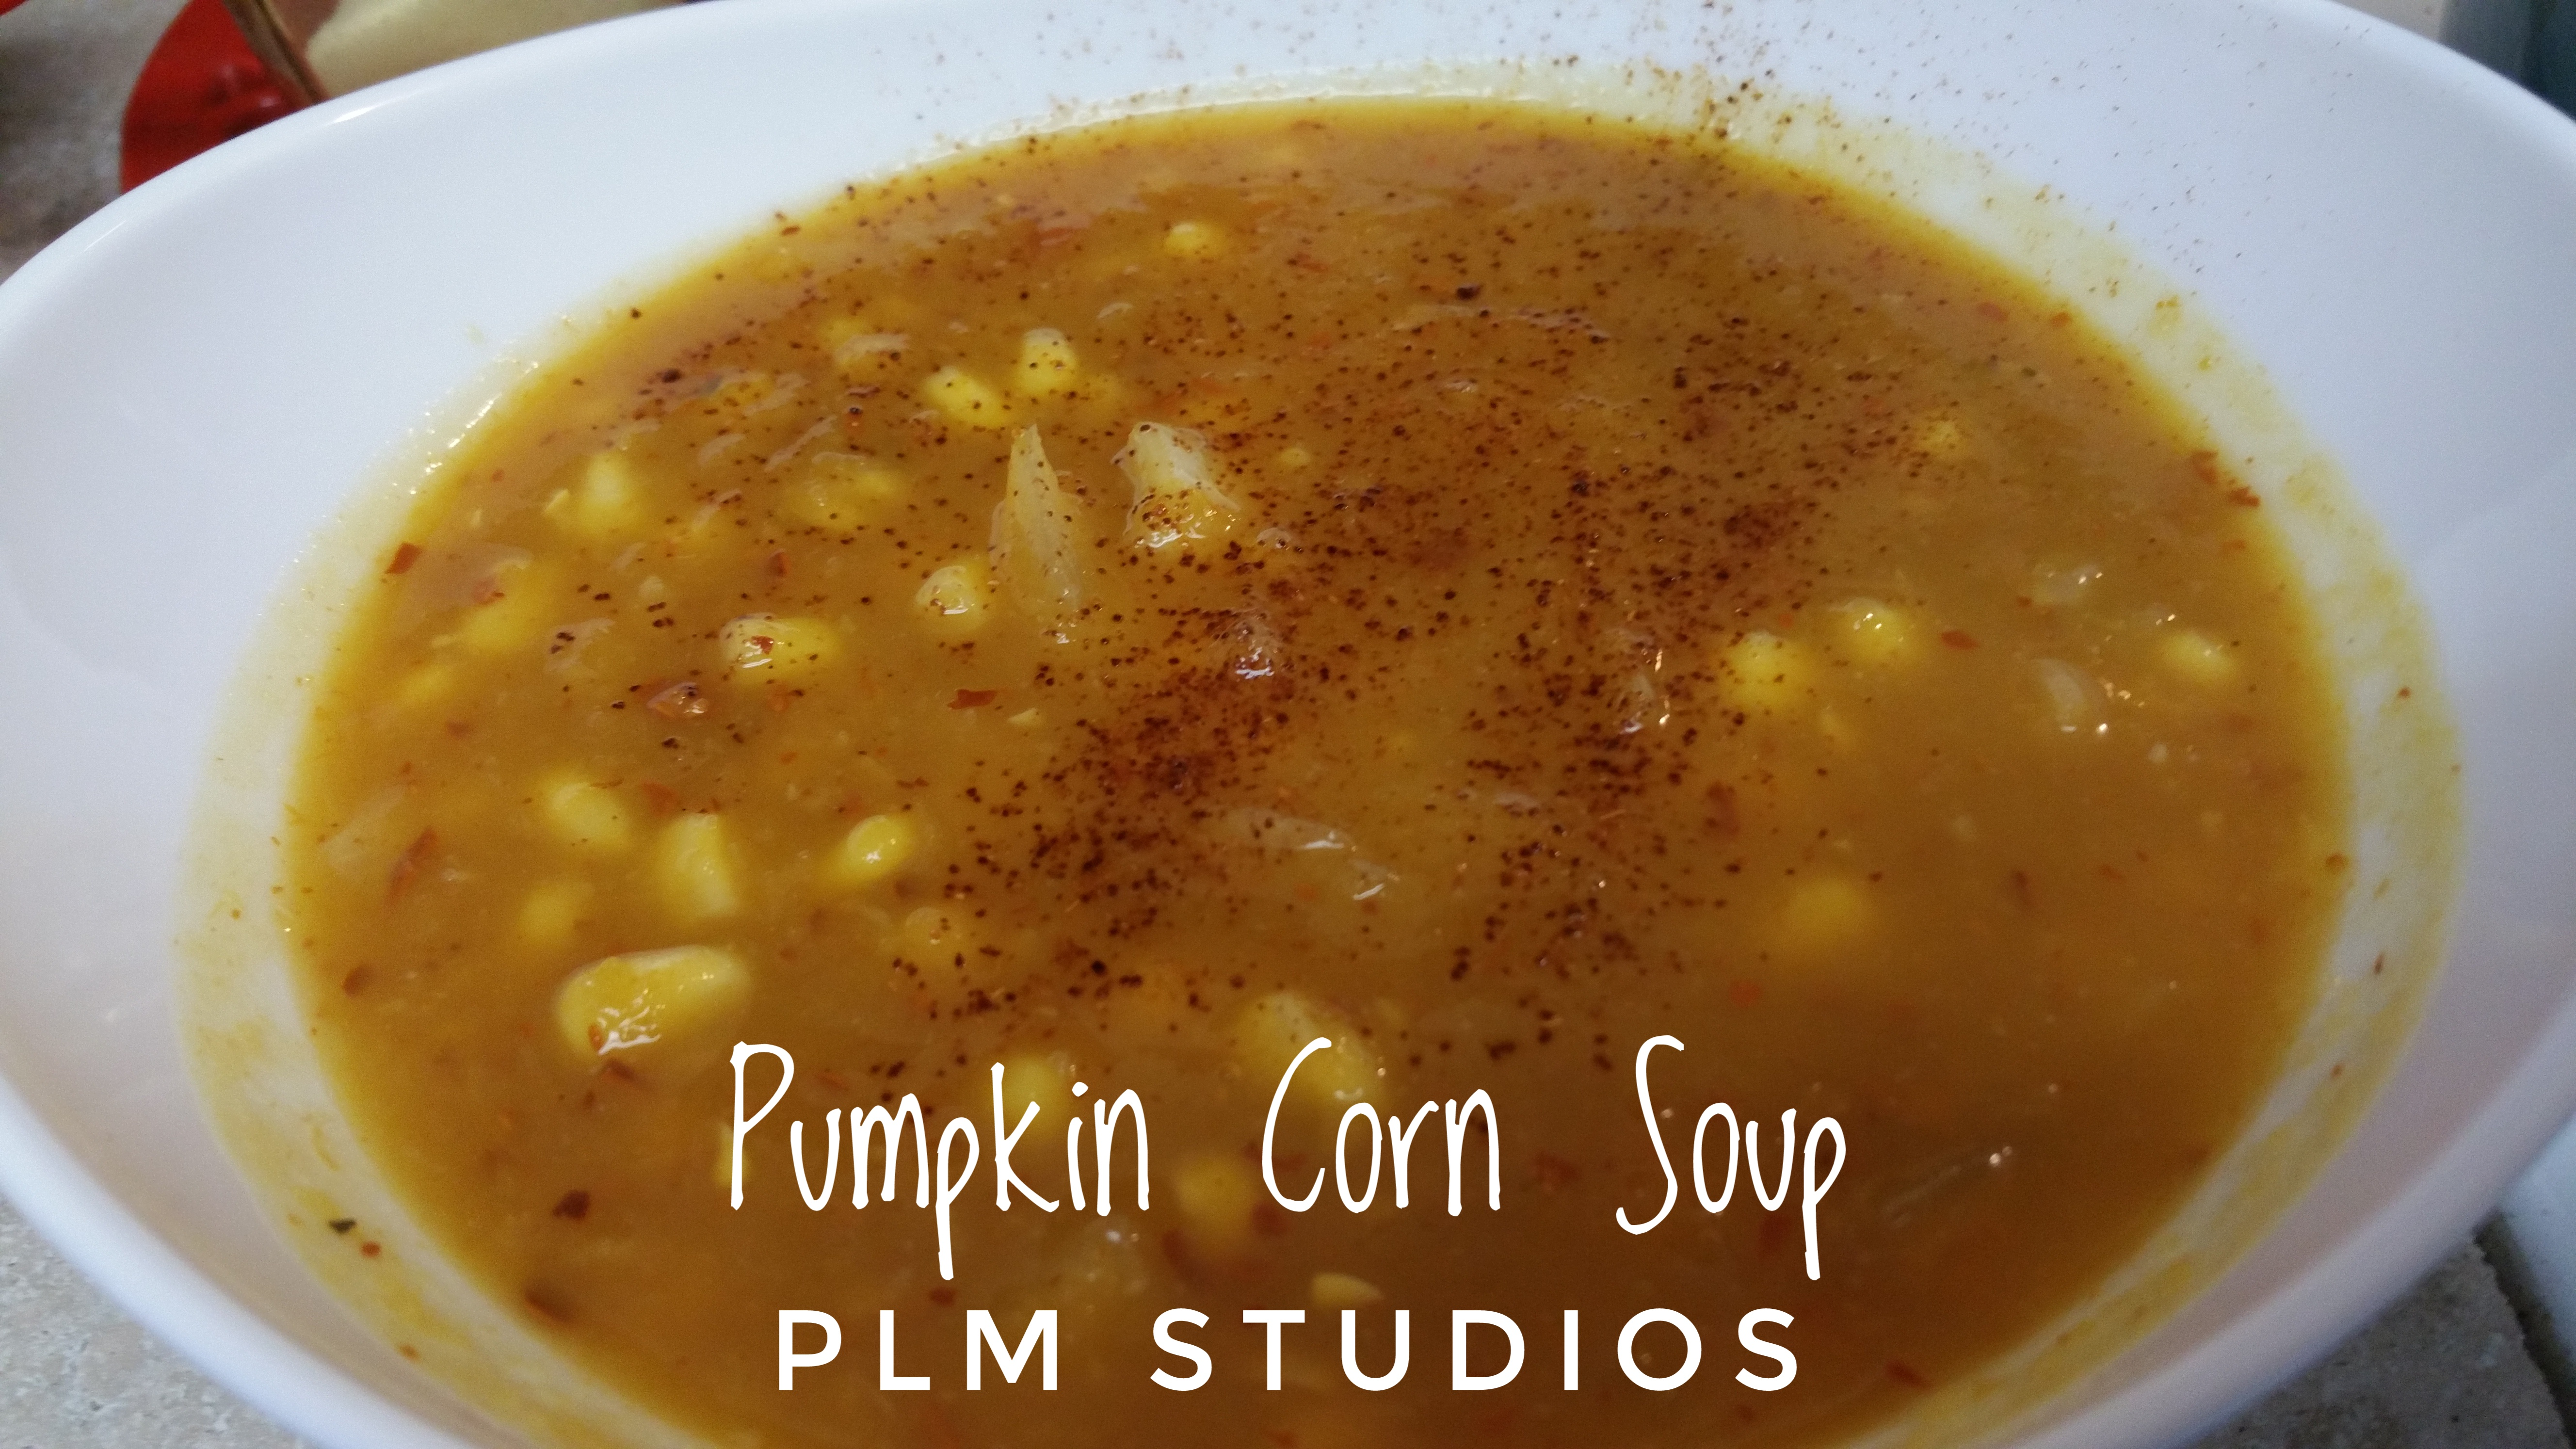 Pumpkin and Sweet Corn Soup (Slow Cook the Pumpkins & Micro the Onion) Save Your Tears for a good movie!